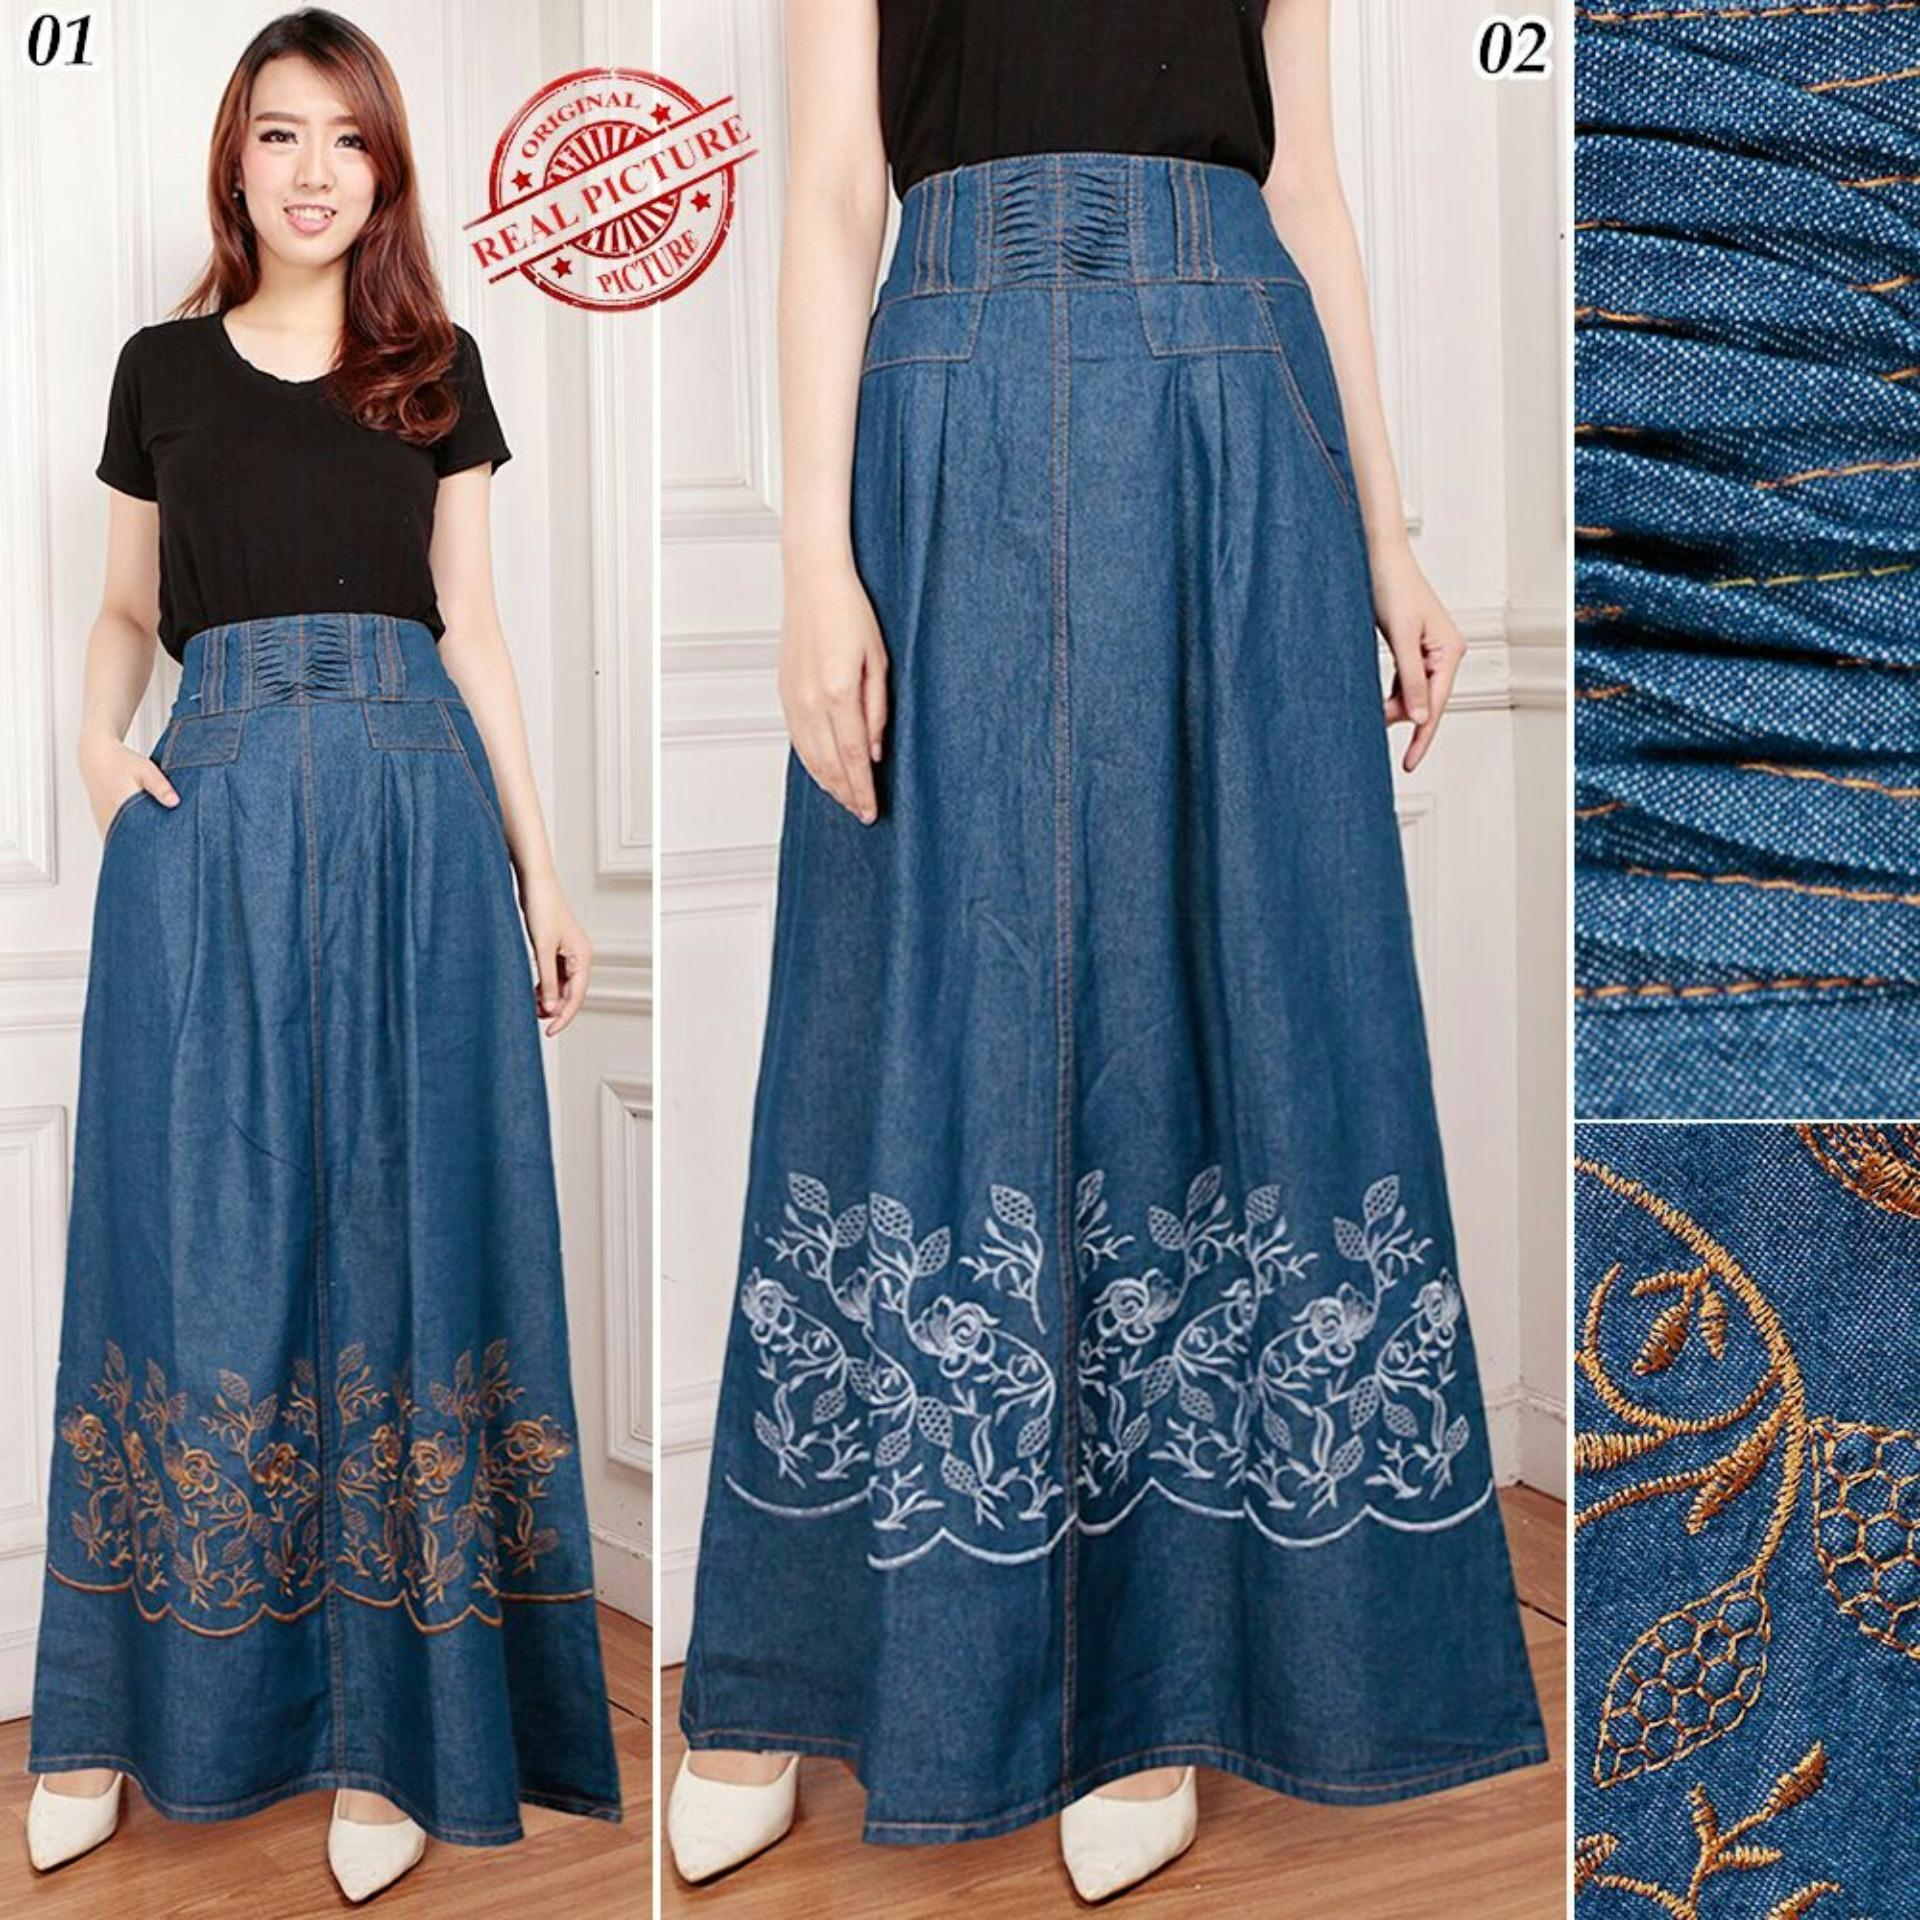 Beli Cj Collection Rok Jeans Maxi Payung Panjang Wanita Jumbo Long Skirt Garsina Murah